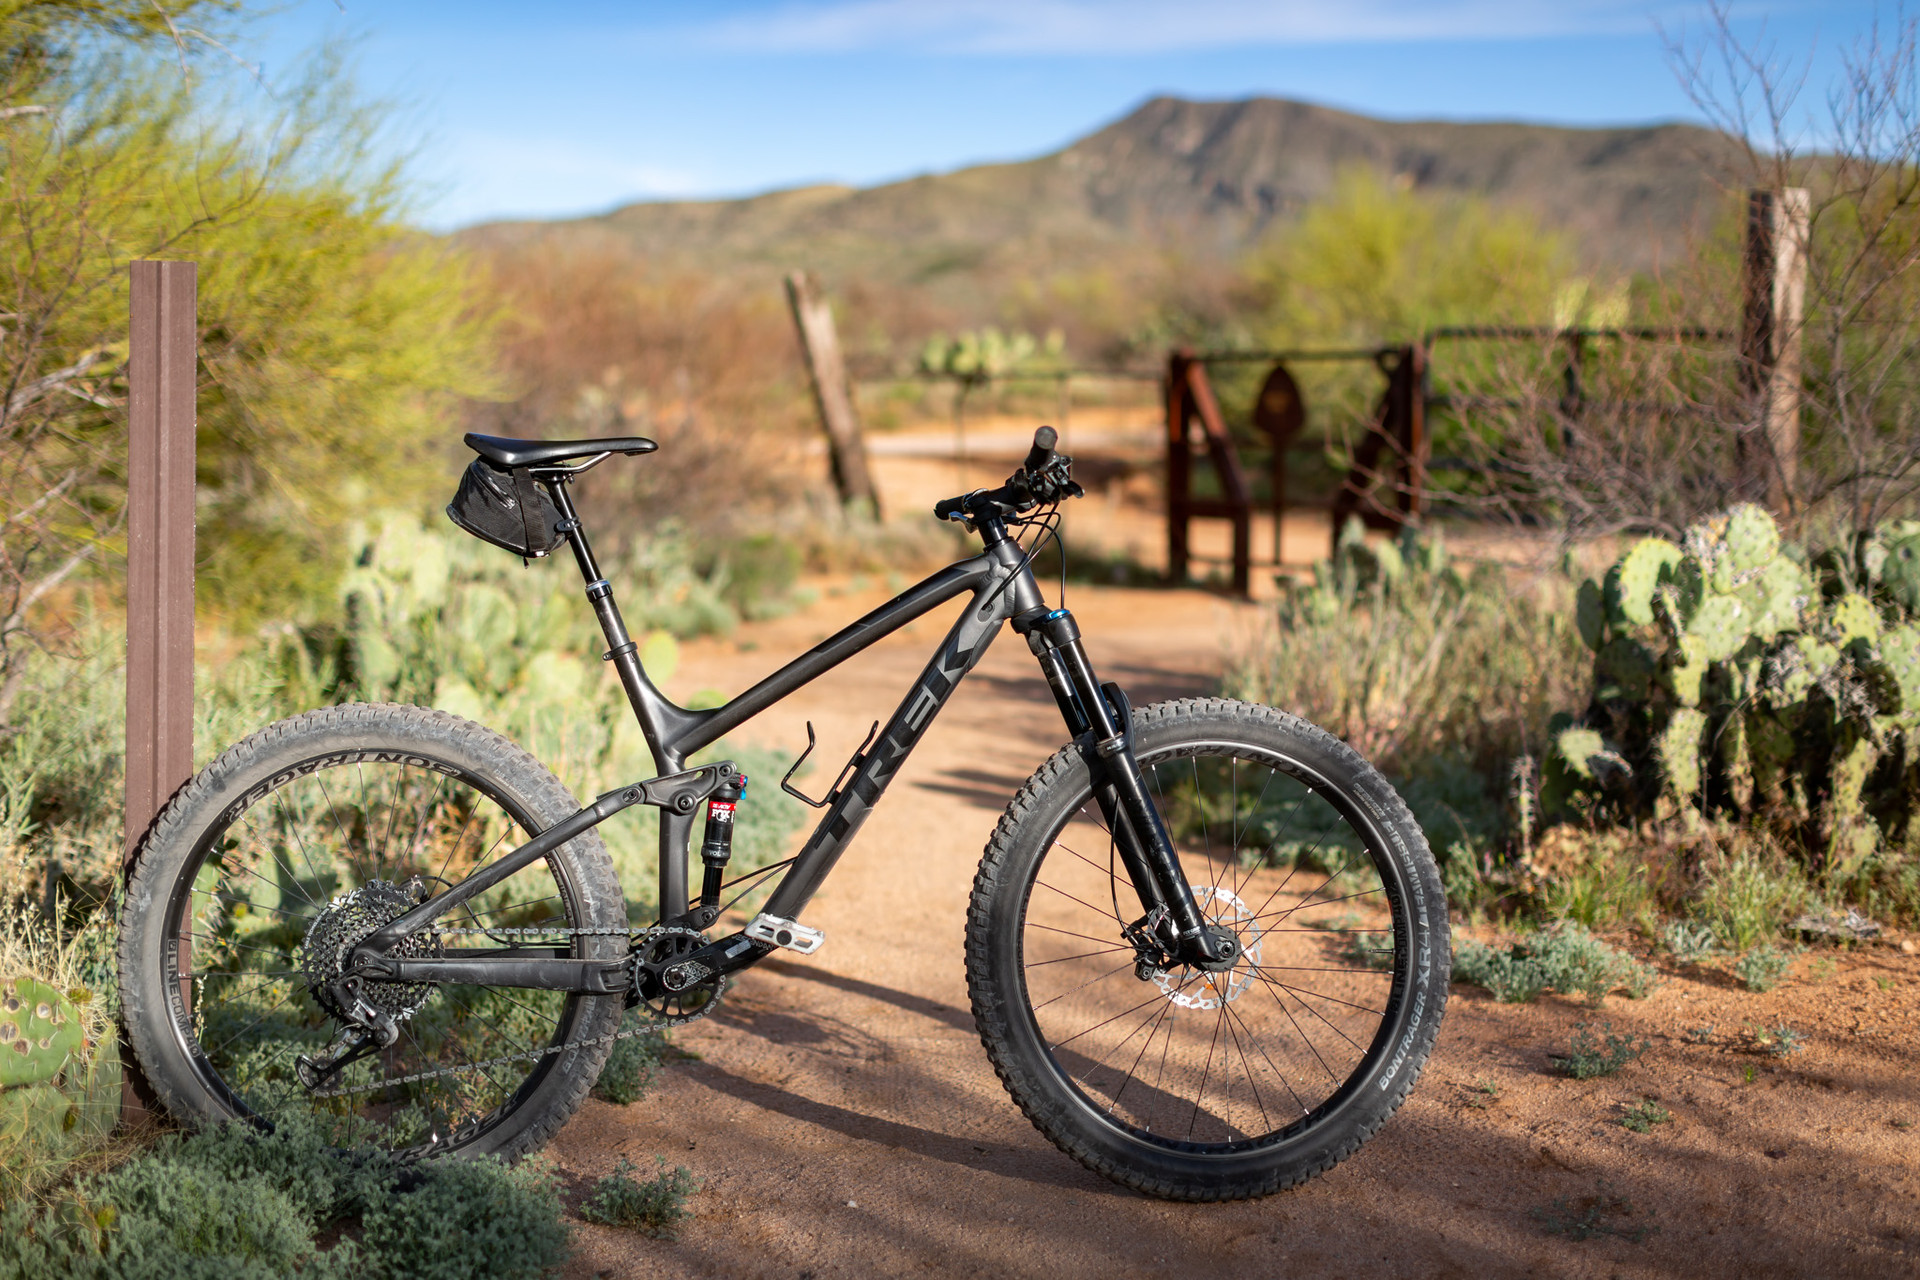 005_042919_ArizonaNemexicoRoadTrip_Carro